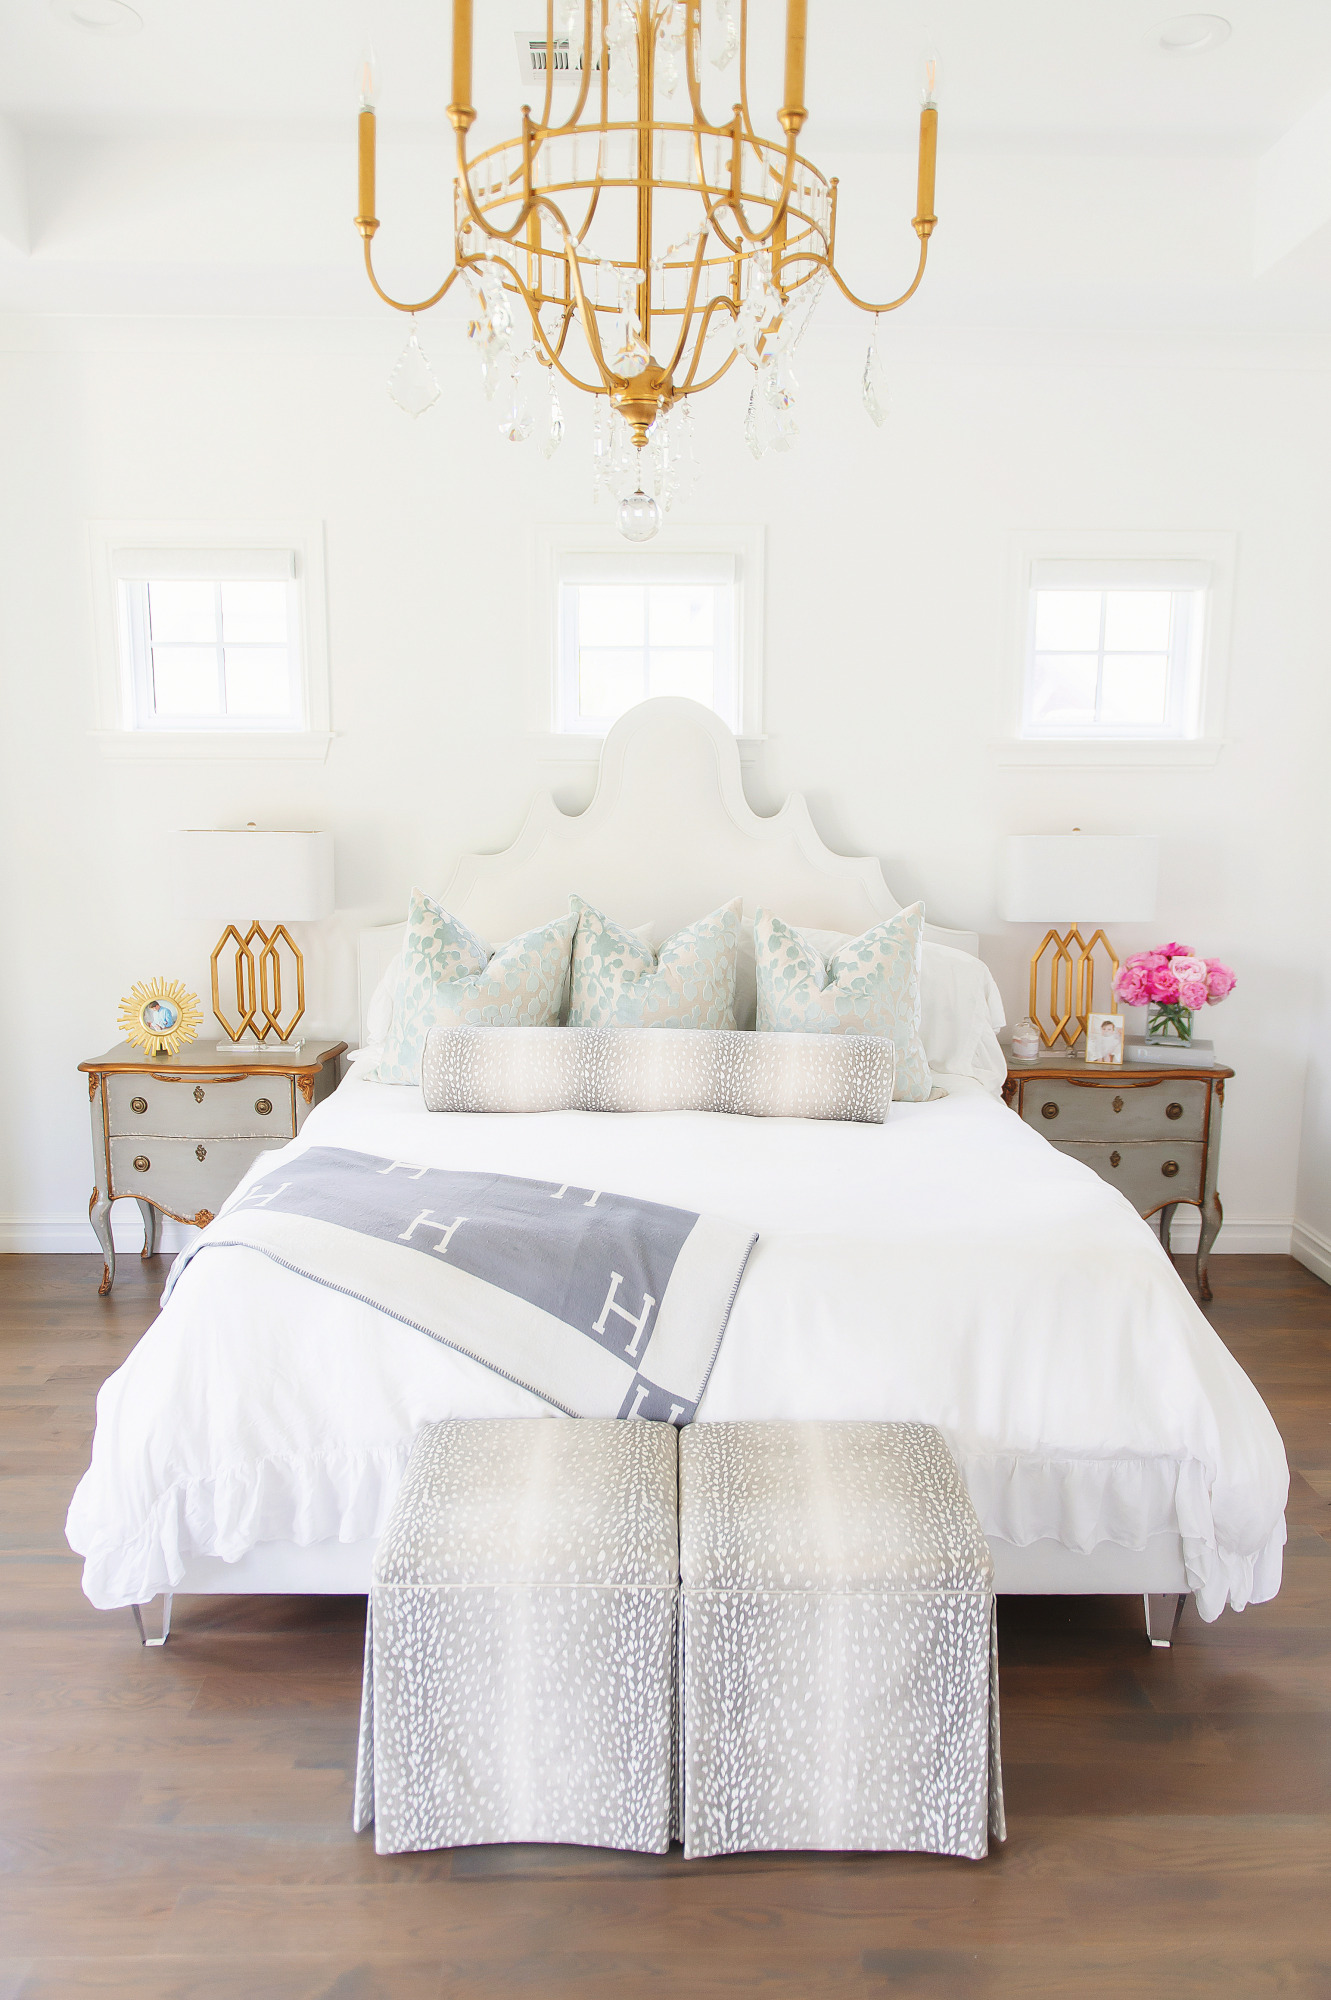 Blog Design by popular US lifestyle blog, The Sweetest Thing: image of Emily Gemma's master bedroom with a gold and crystal chandelier, grey wood night stands, antelope print bench, and a bed with a fabric headboard, antelope print lumbar pillow and white duvet cover.